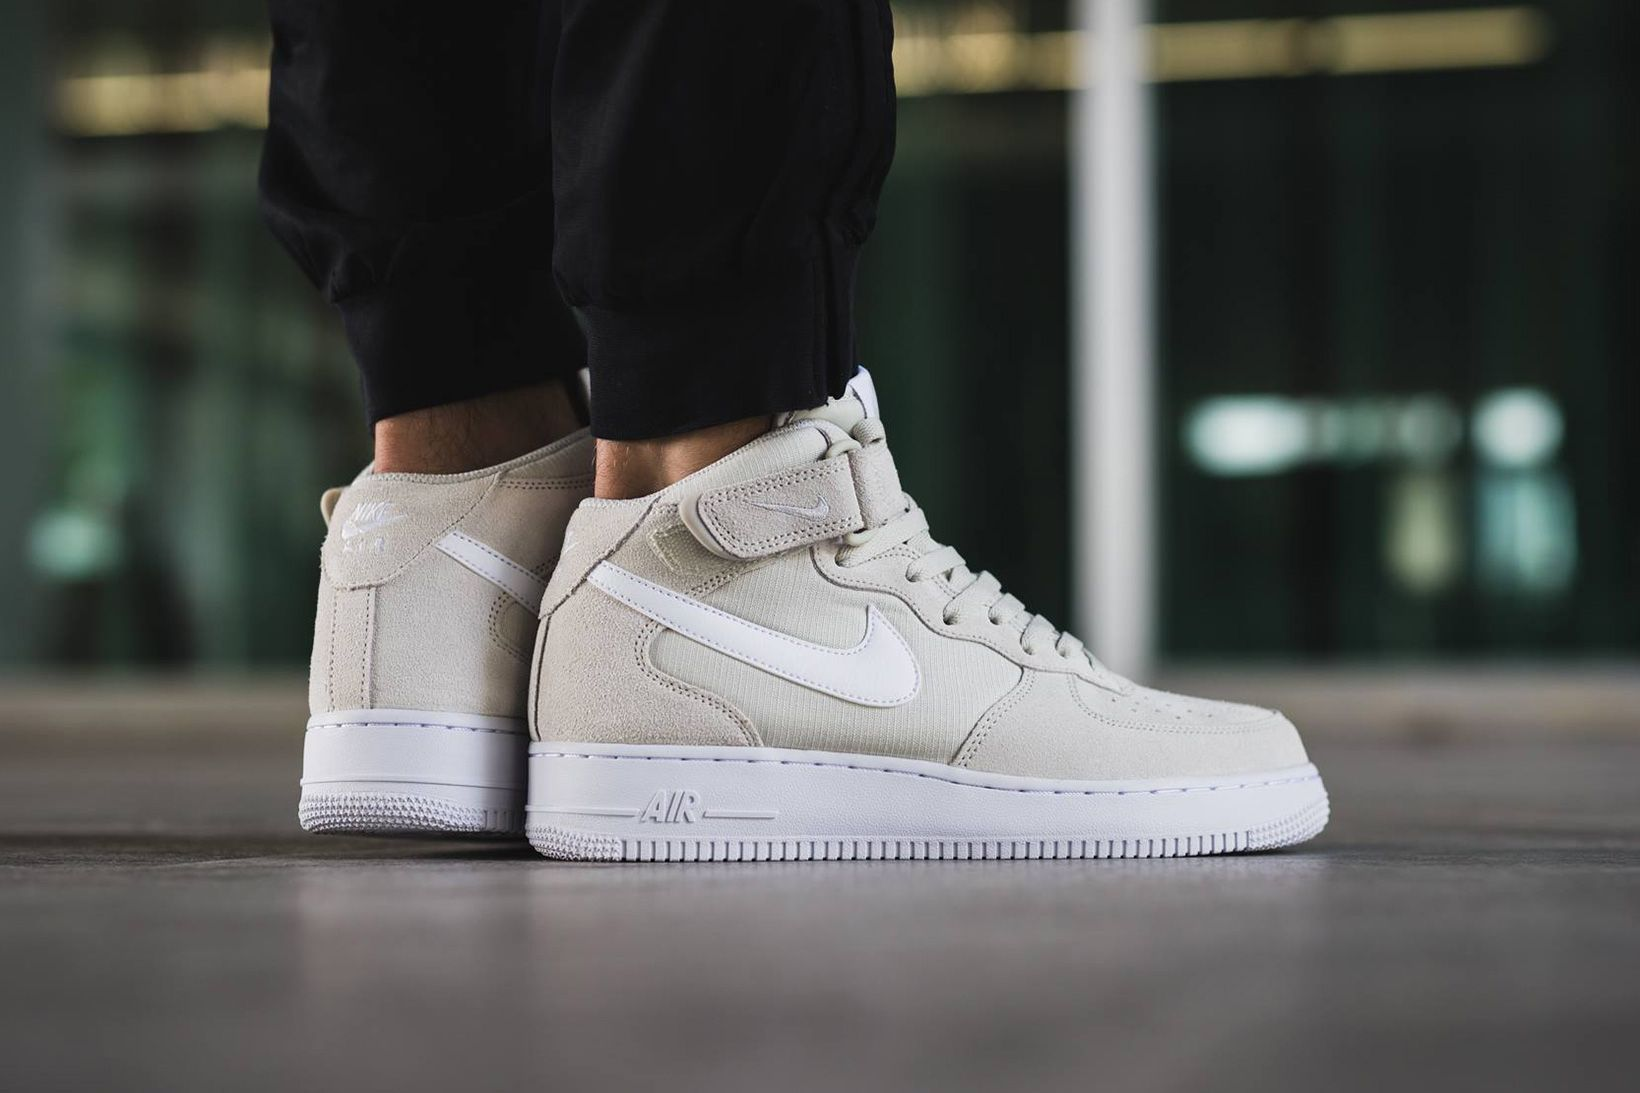 Clean Force Gets Nike Air A 1 Mid The fY76yvbg